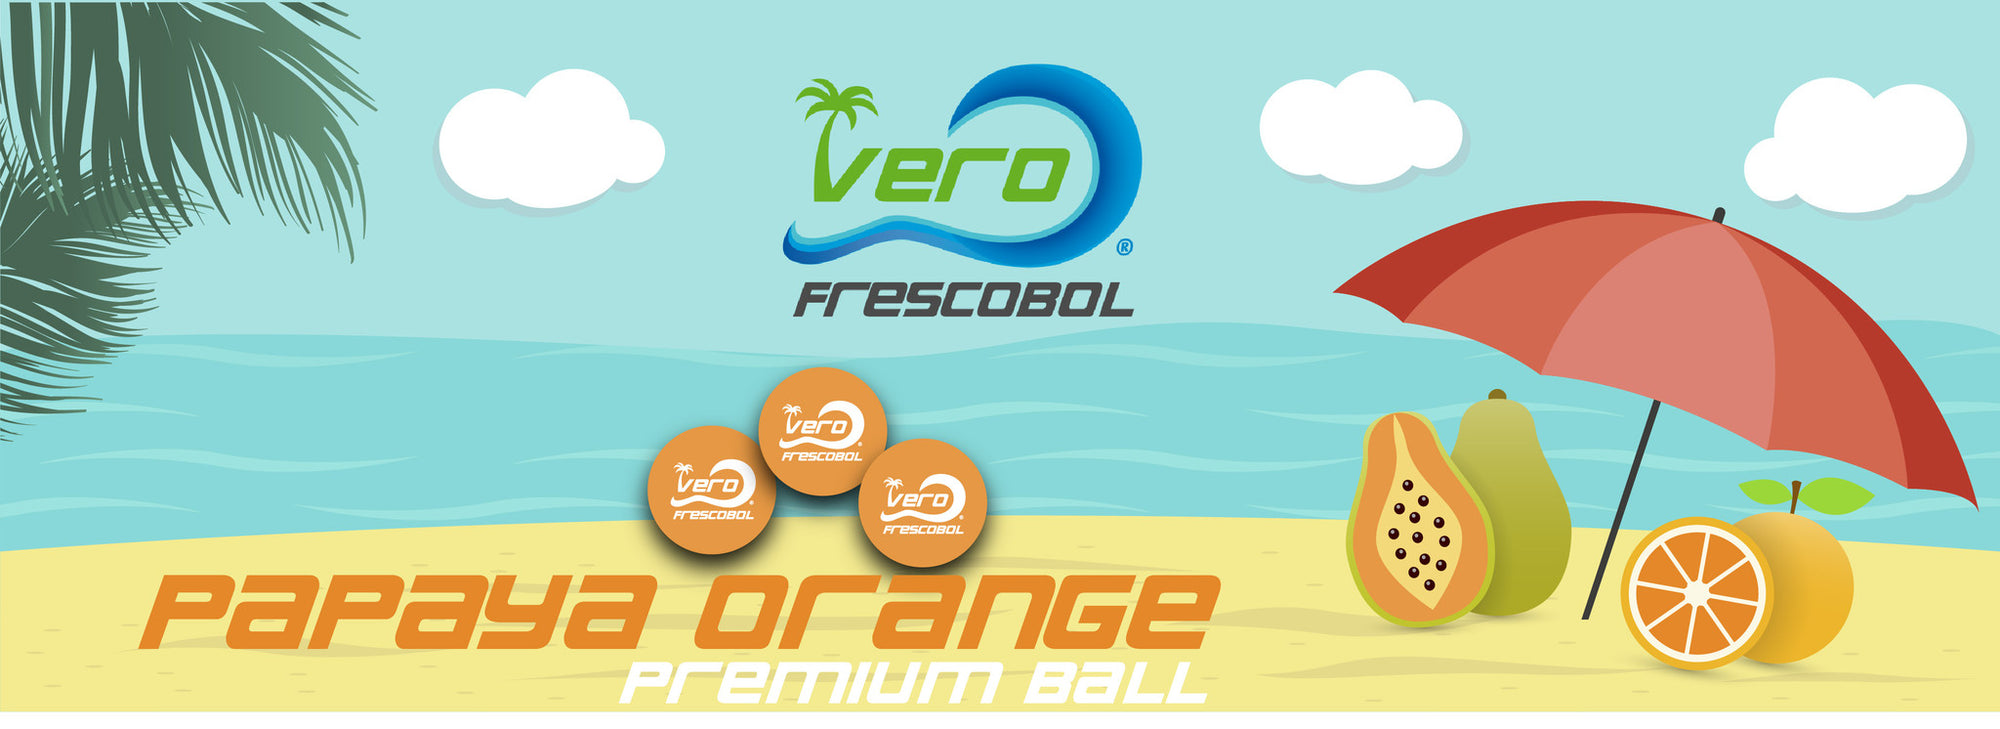 Frescobol balls in Papaya Orange for fun beach game play